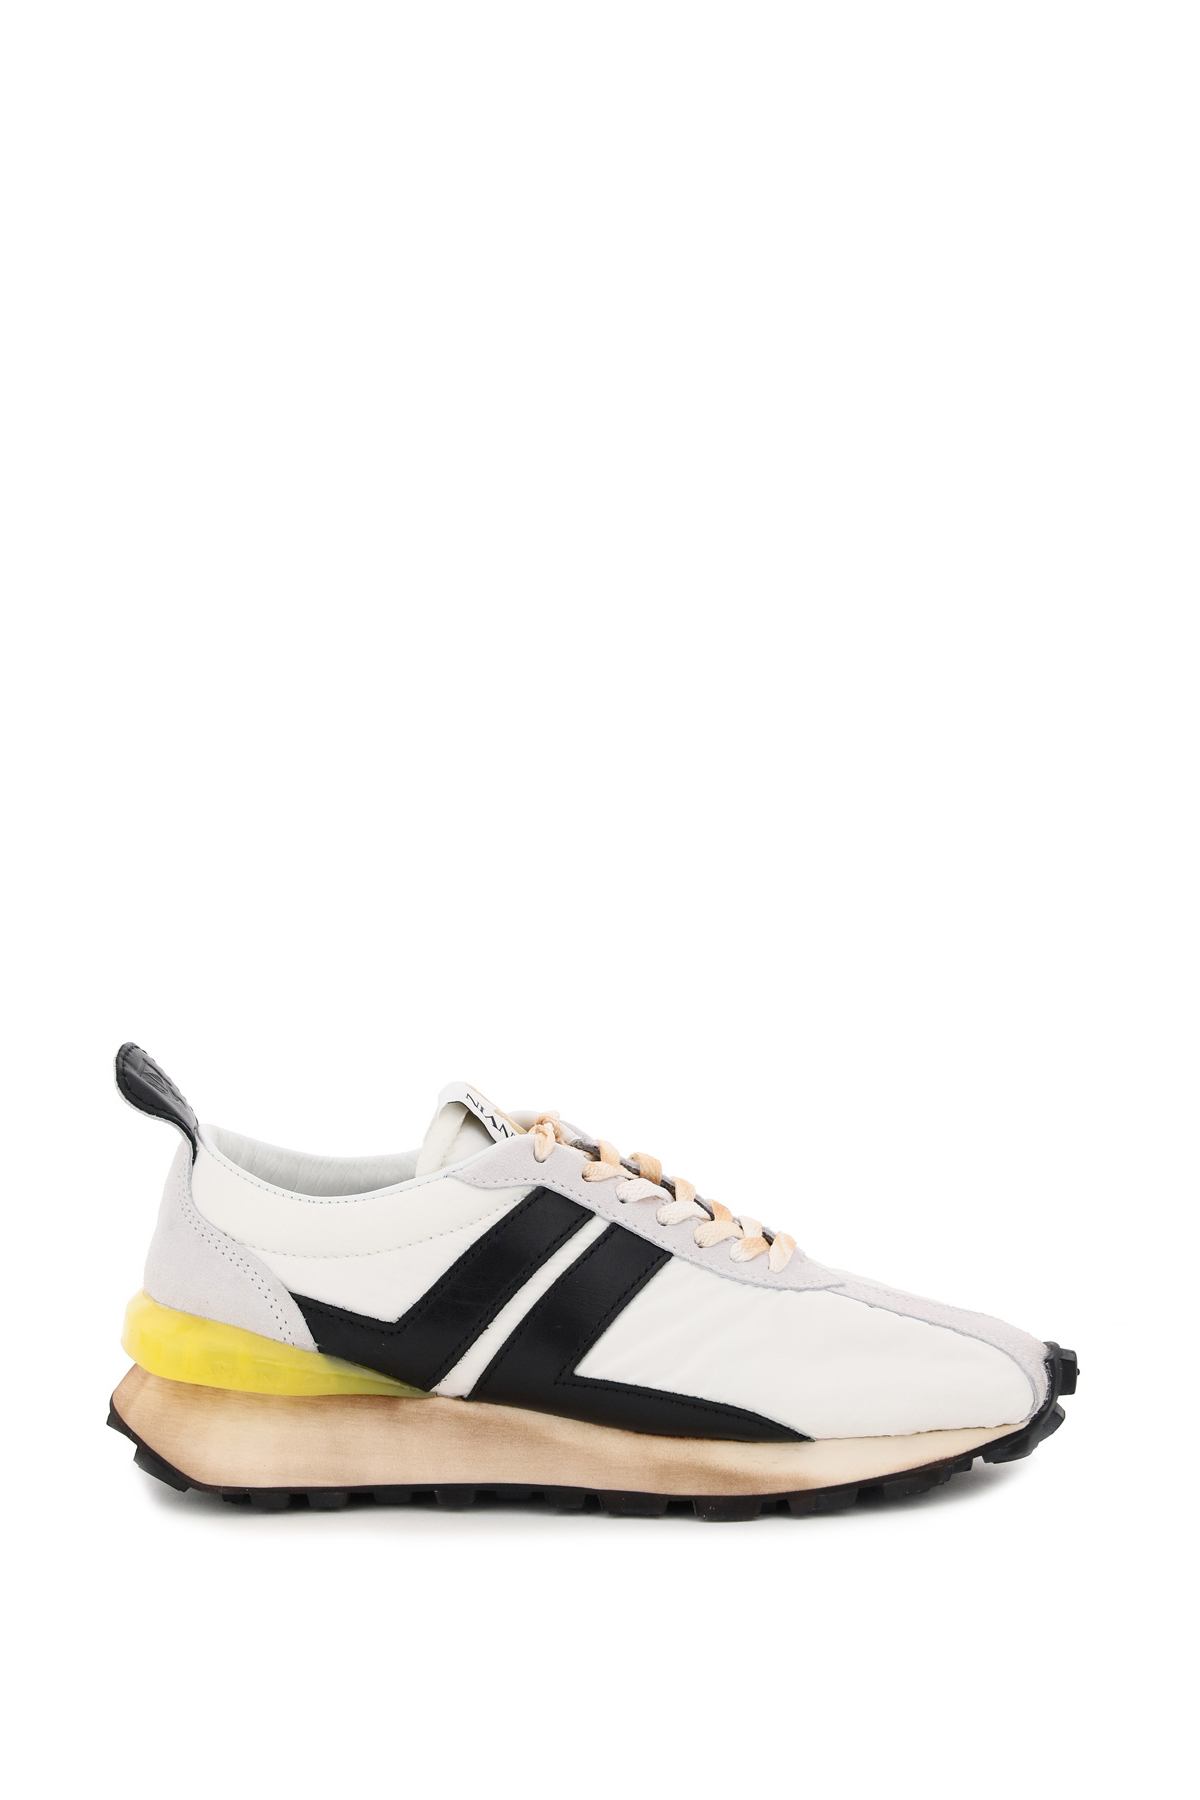 LANVIN BUMPER SNEAKERS 42 White, Black, Yellow Leather, Technical